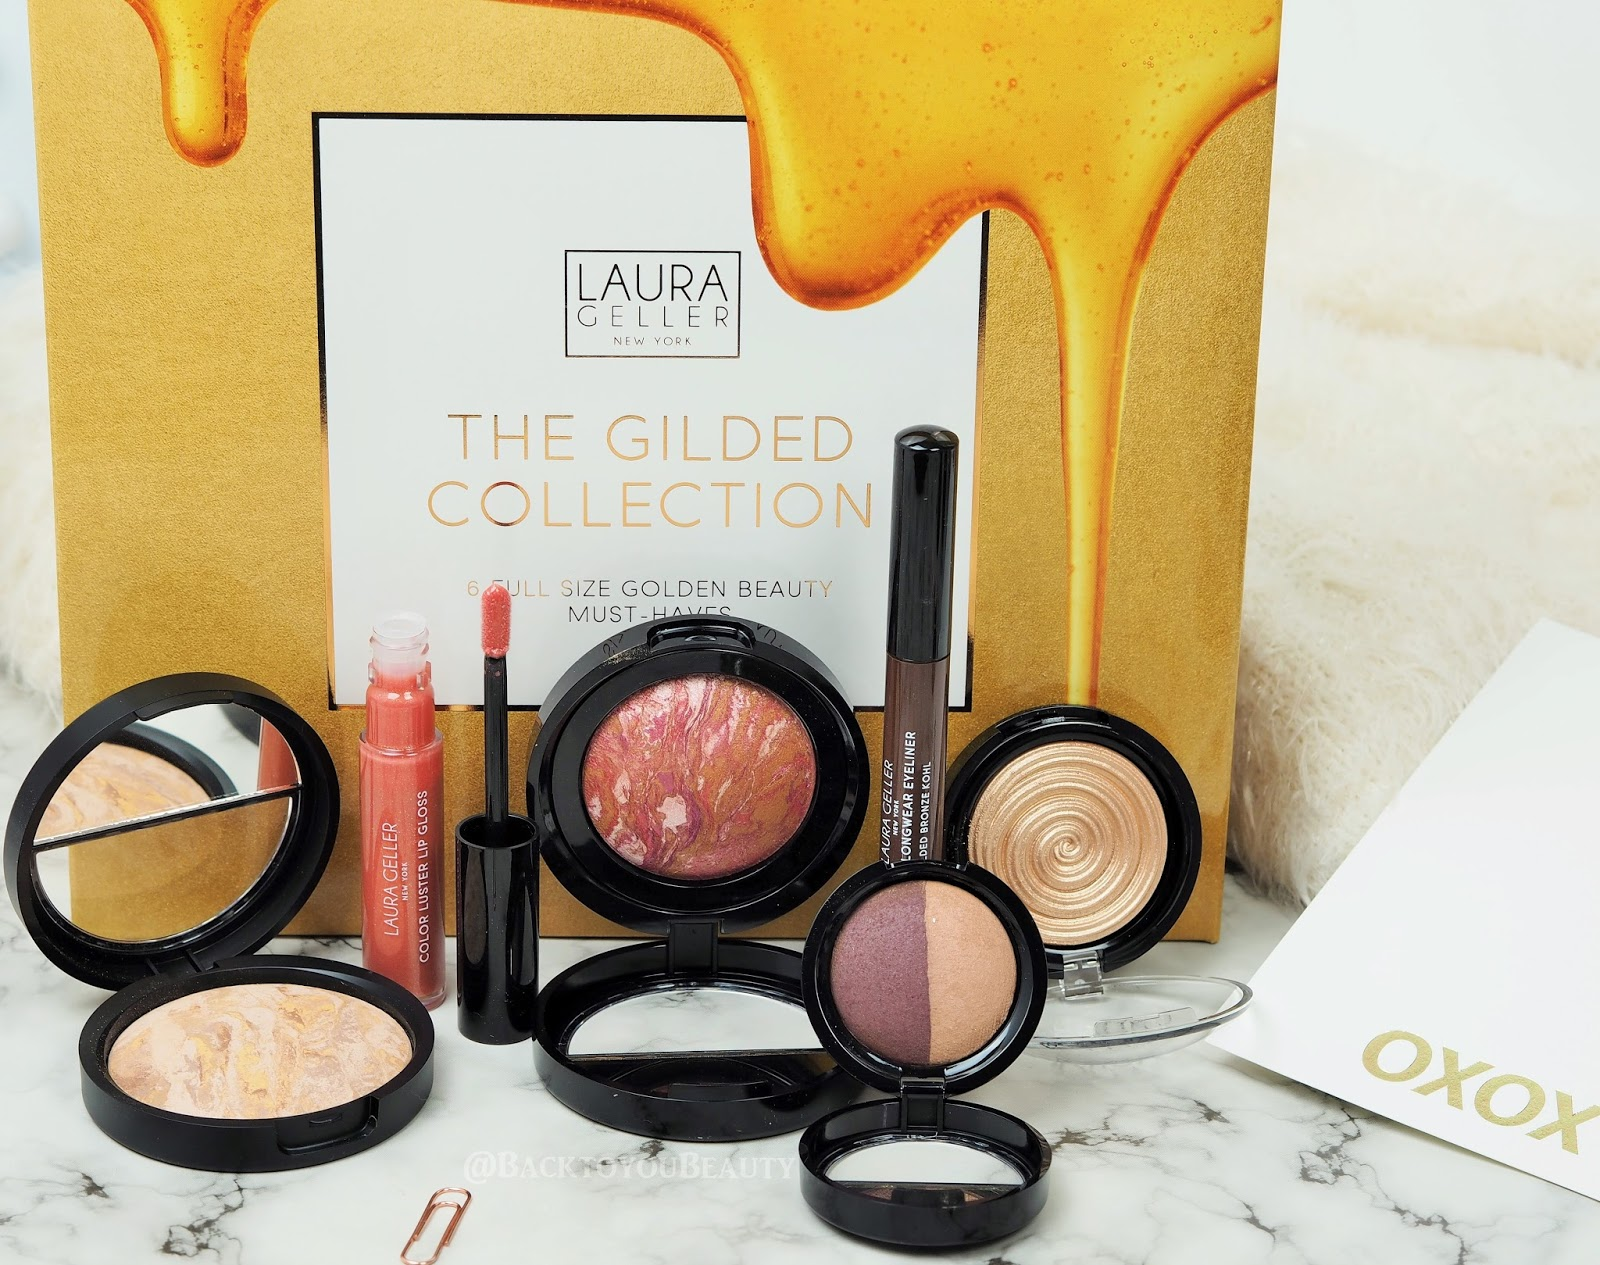 Laura Geller Tsv - The Gilded Collection